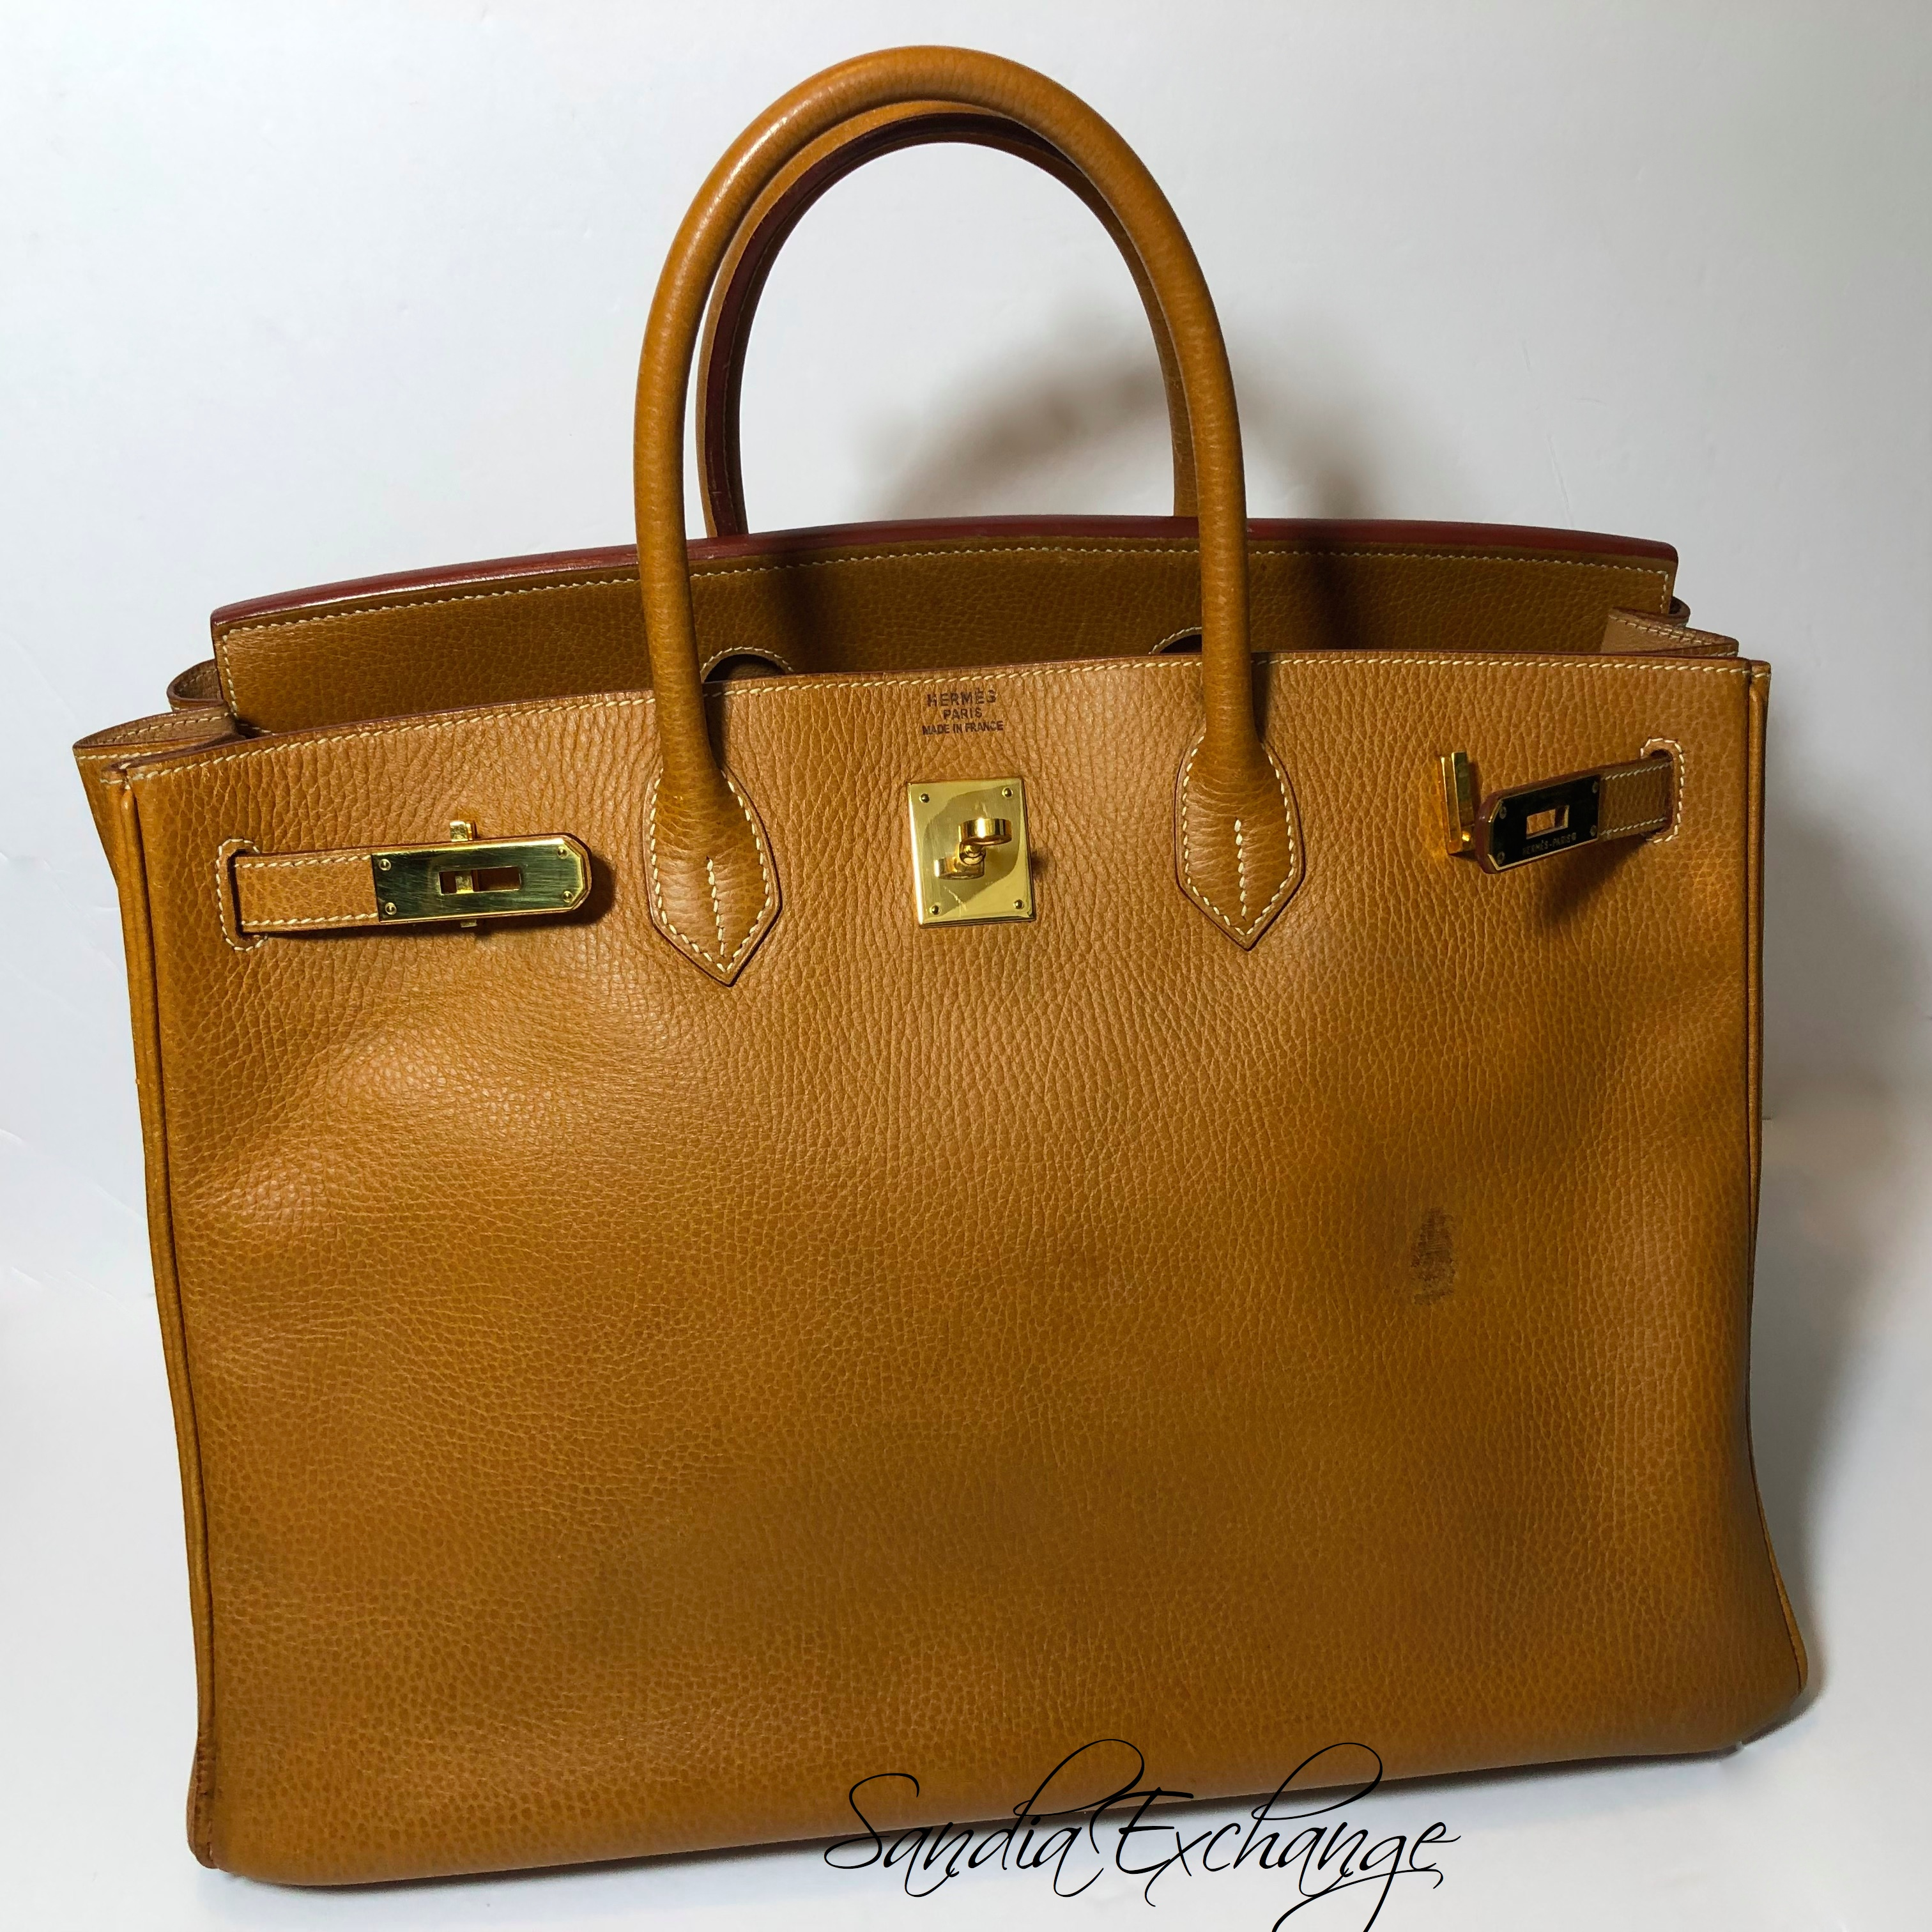 Hermes Birkin 40 cm Gold Ardennes Gold Hardware Authentic Vintage